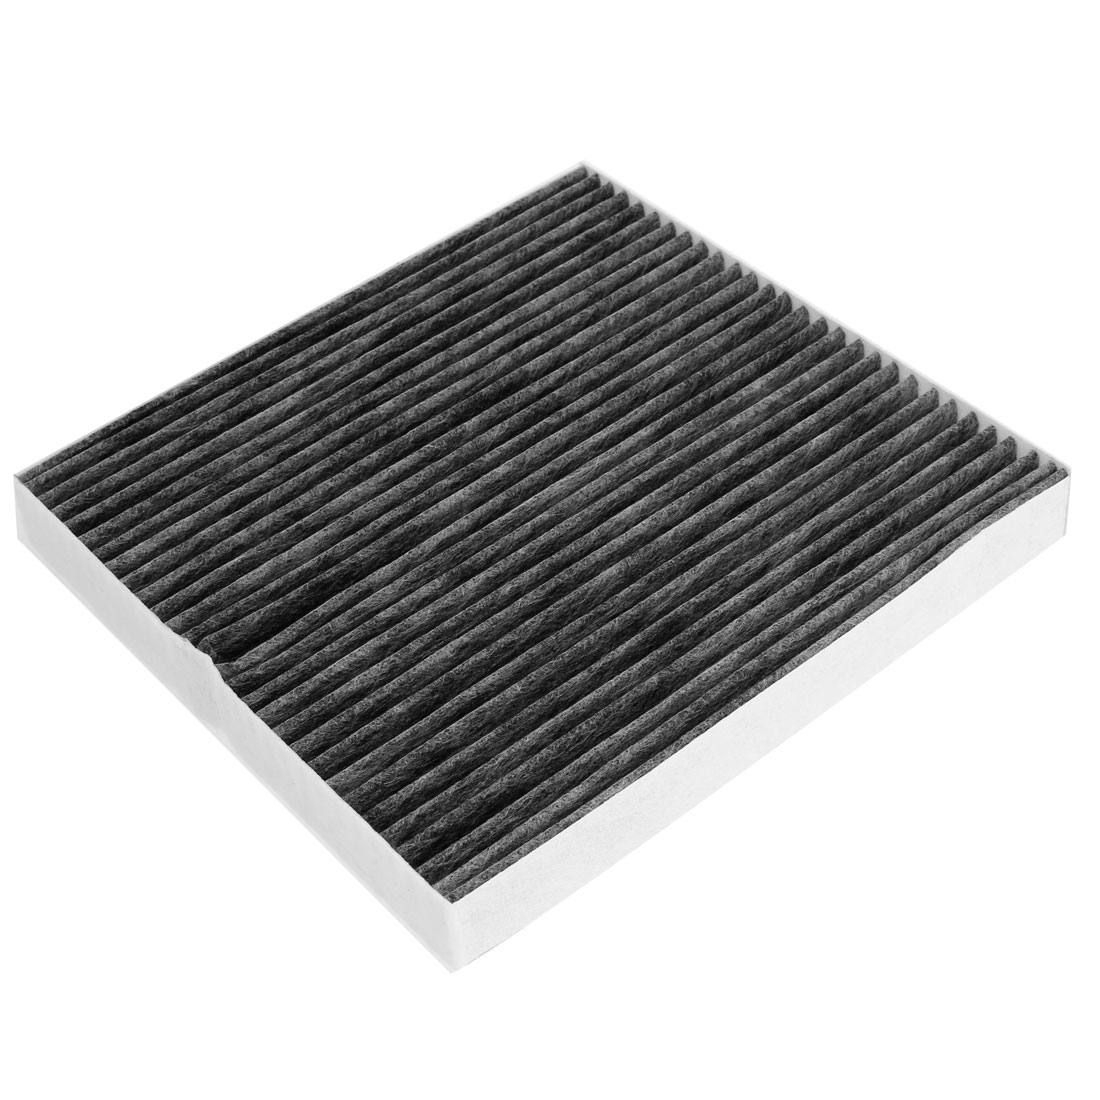 Cheap Hyundai Cabin Filter Replacement Find Air Get Quotations 80292 Sda A01 Vehicle Car Part Fdiscount 50